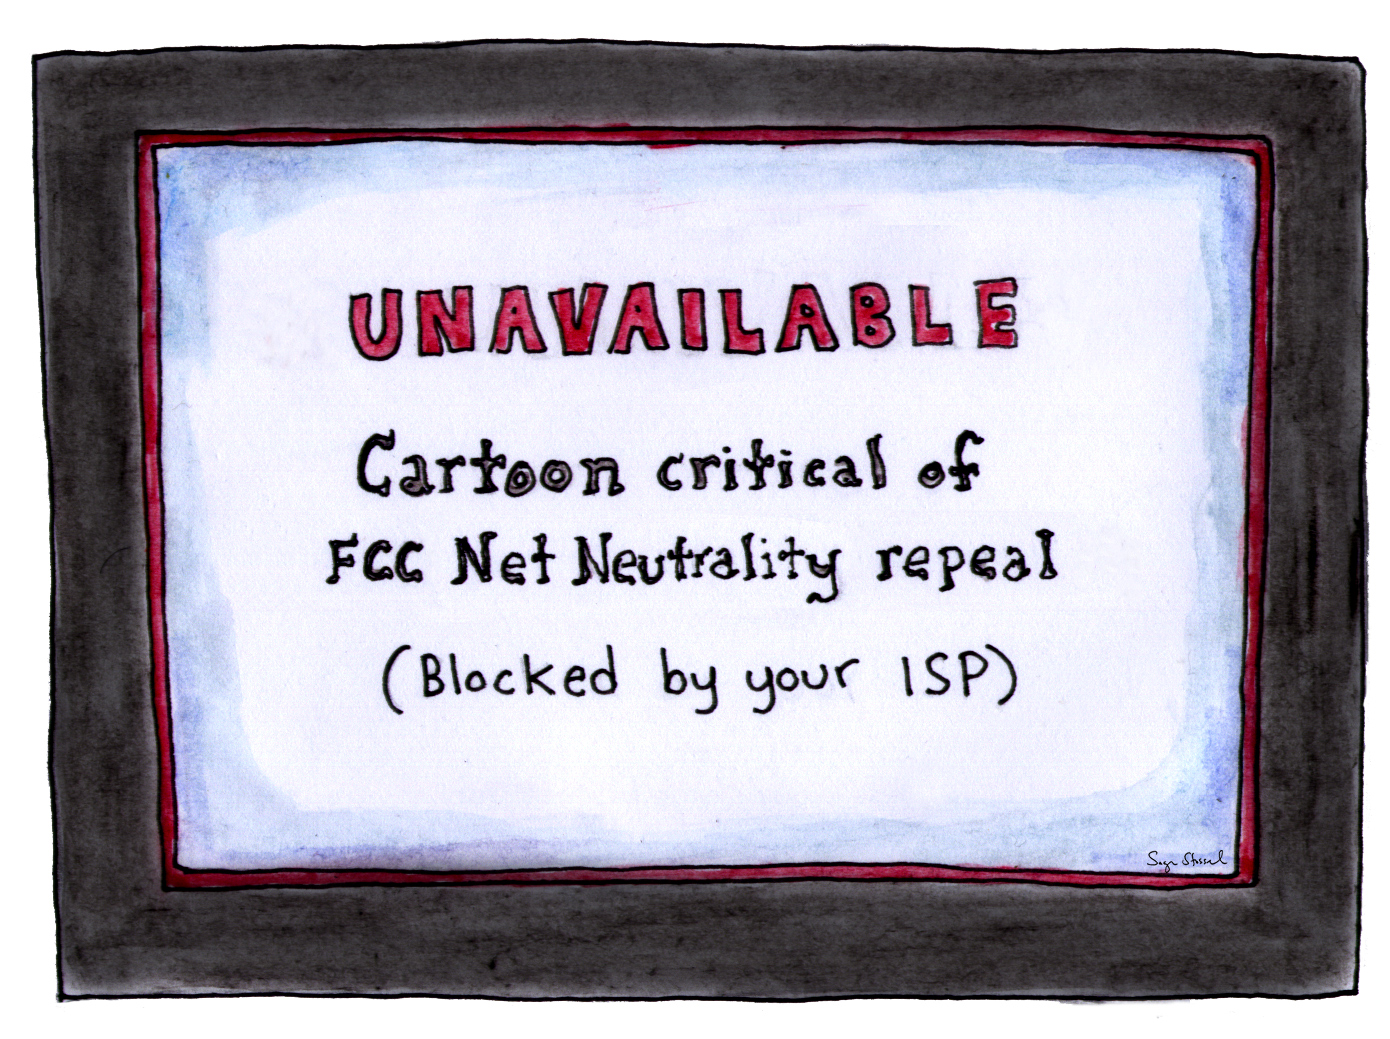 fcc, net neutrality repeal, ajit pai, internet, networks, fast and slow lanes, isp, cartoon